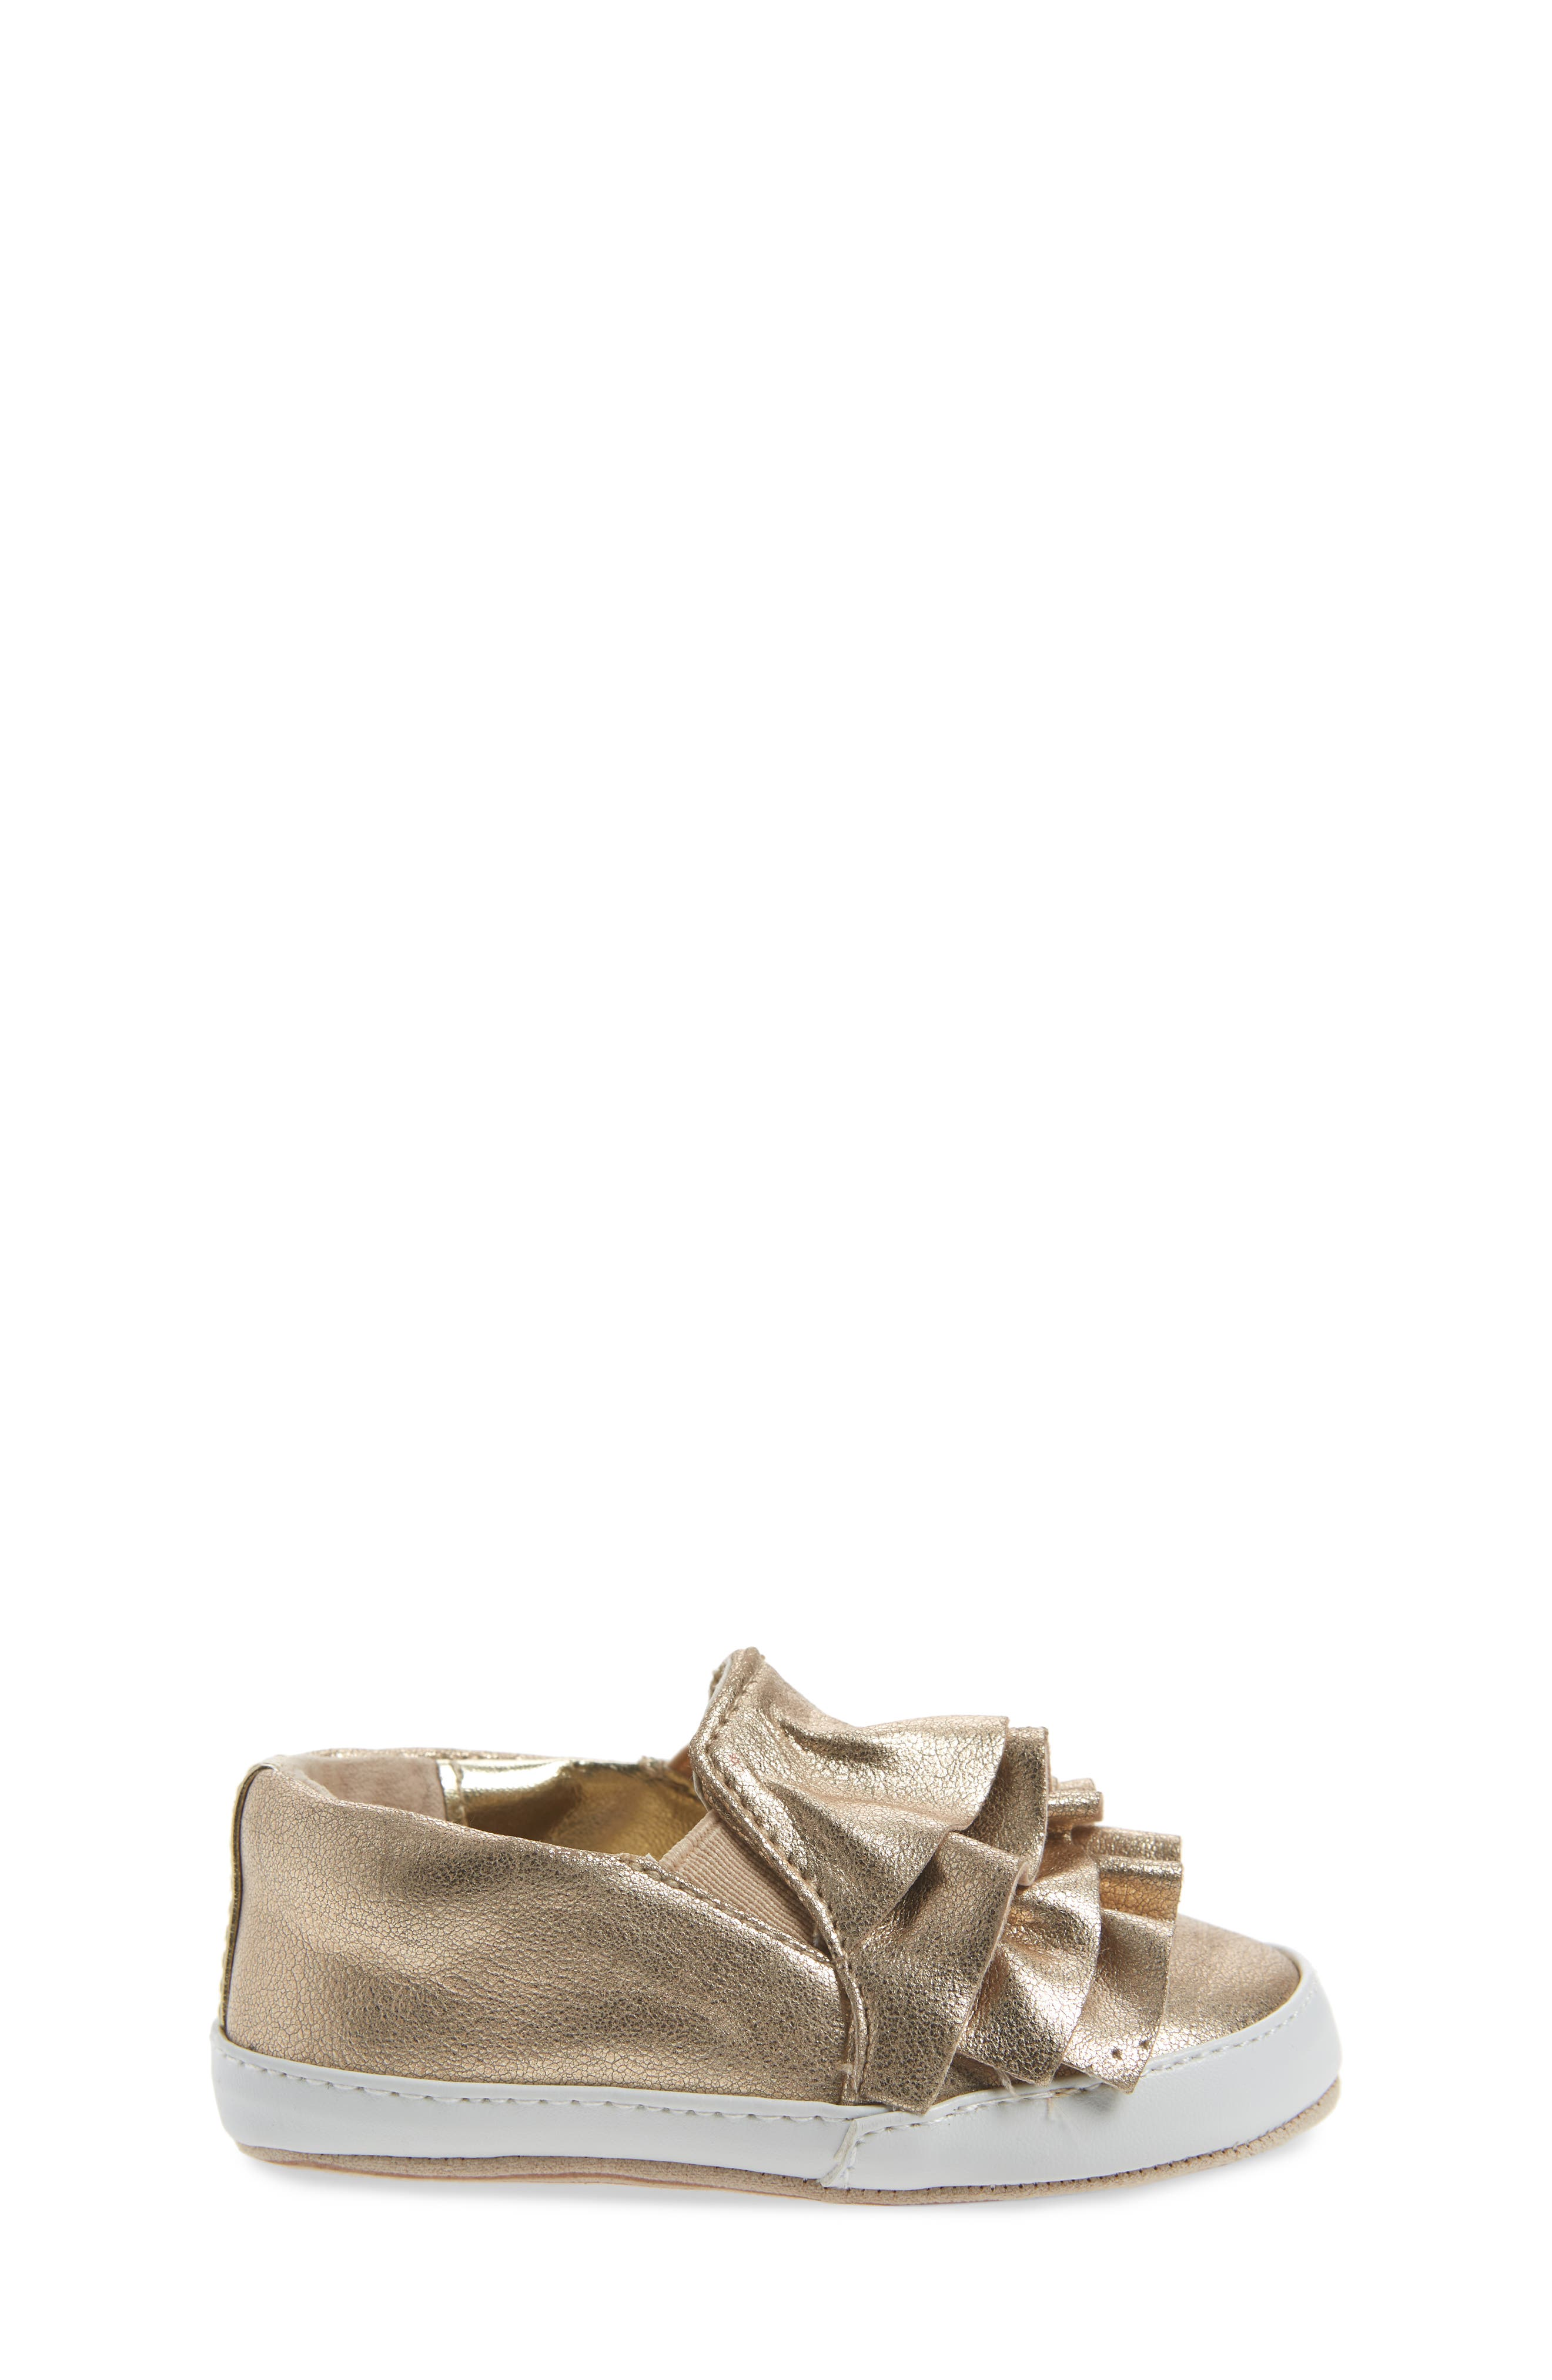 Ruffle Metallic Kam Slip-On Sneaker,                             Alternate thumbnail 3, color,                             710